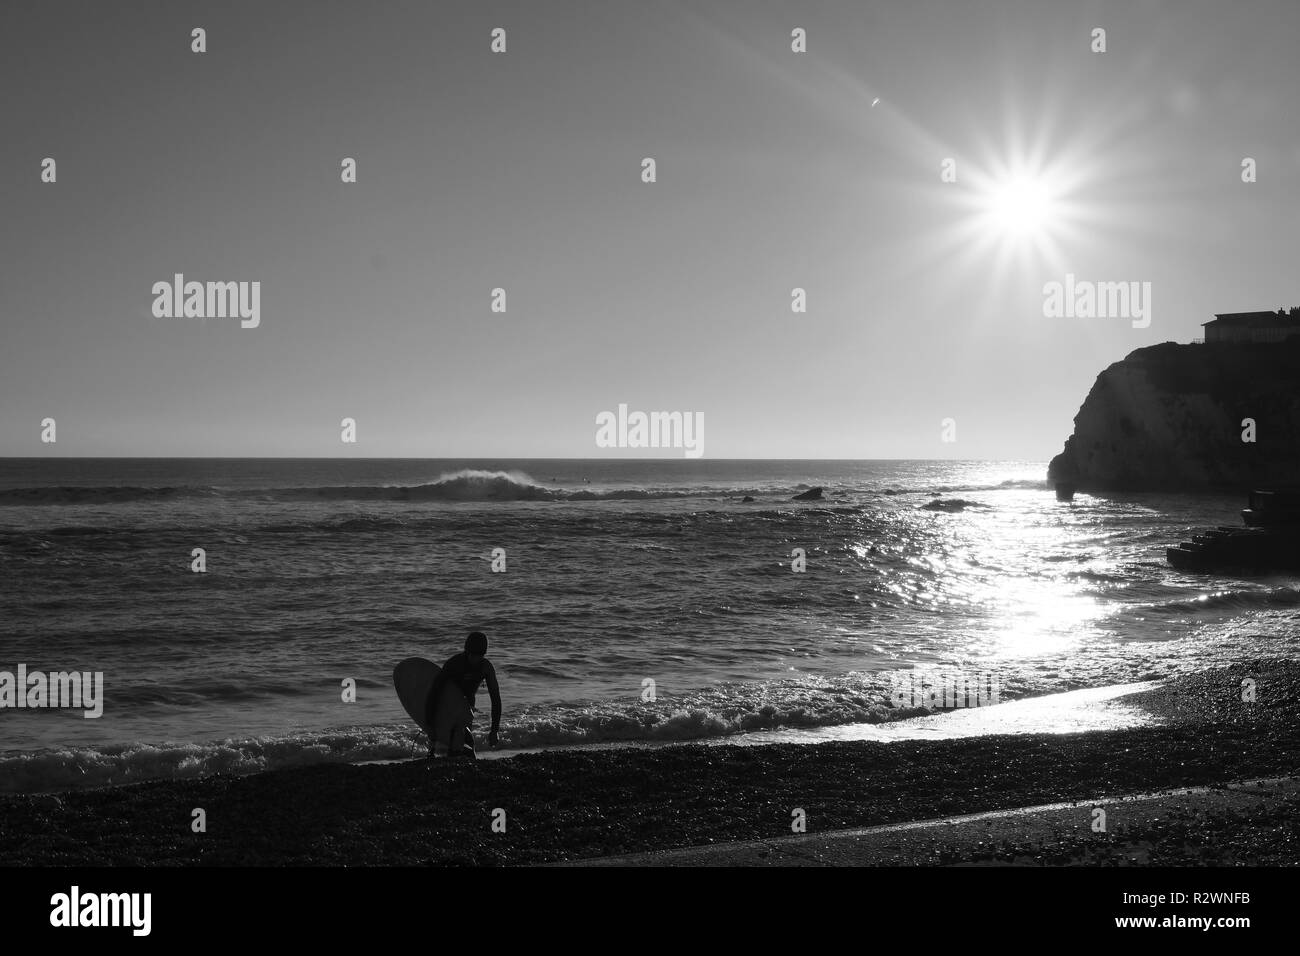 A surfer exits the water walking up the beach carrying his surf board at Freshwater Bay Isle of Wight. A bright sun shines on the wintery scene - Stock Image